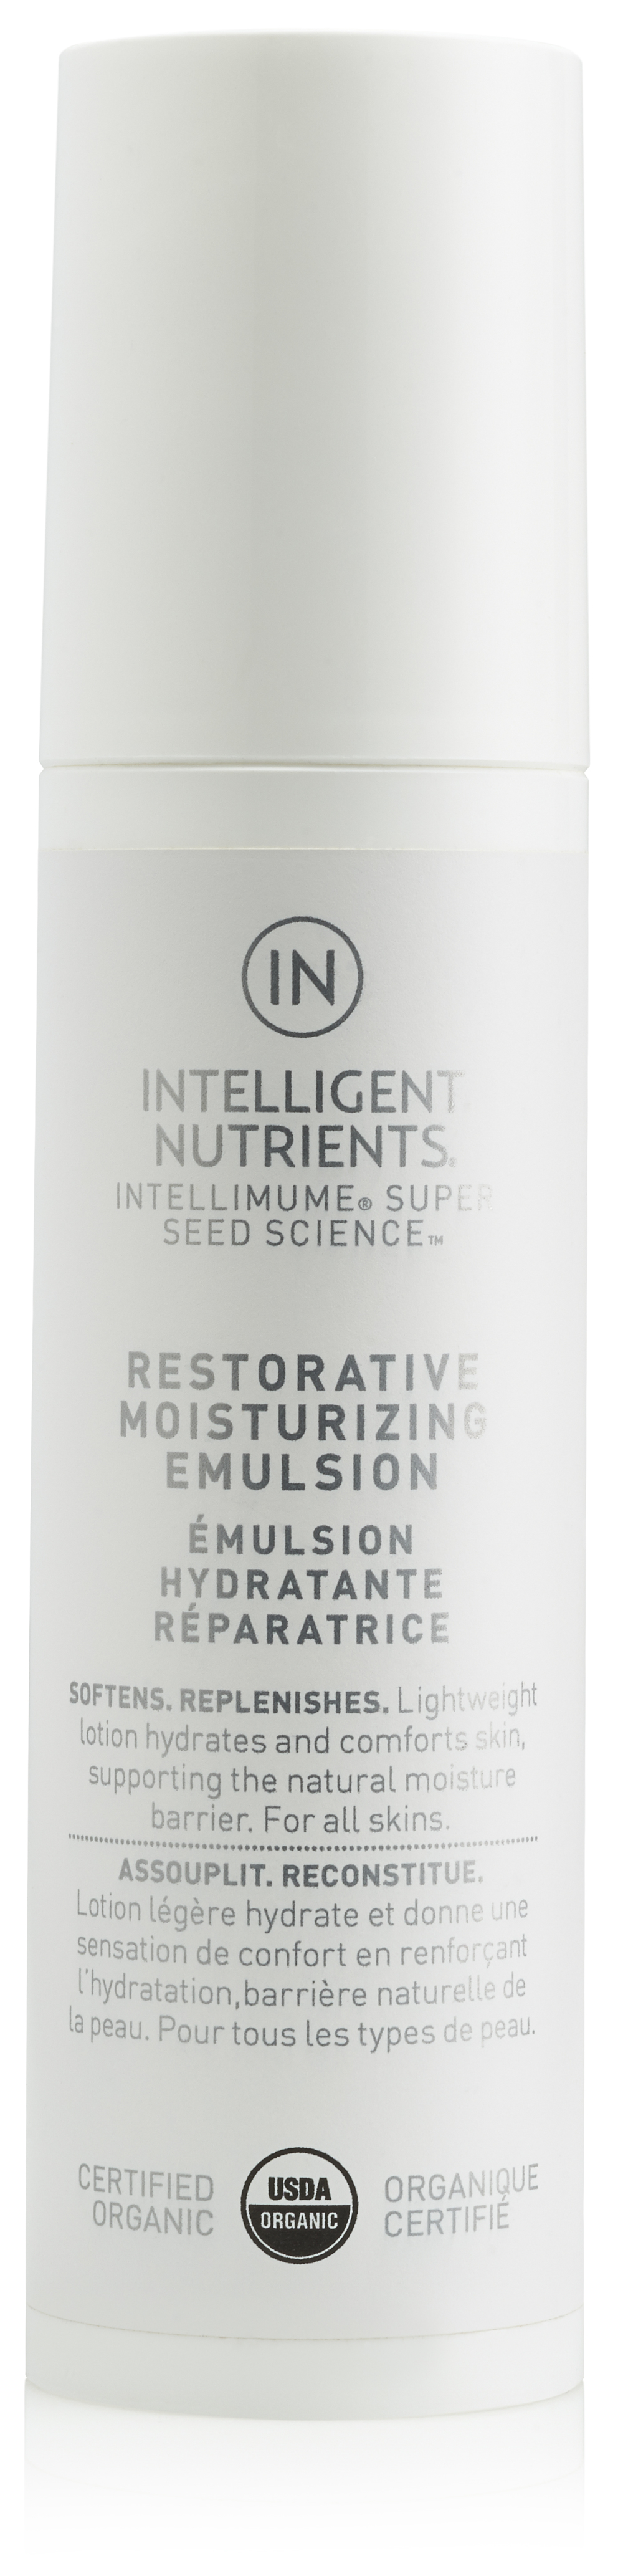 Restorative Moisturizing Emulsion (DKK460/90ml)